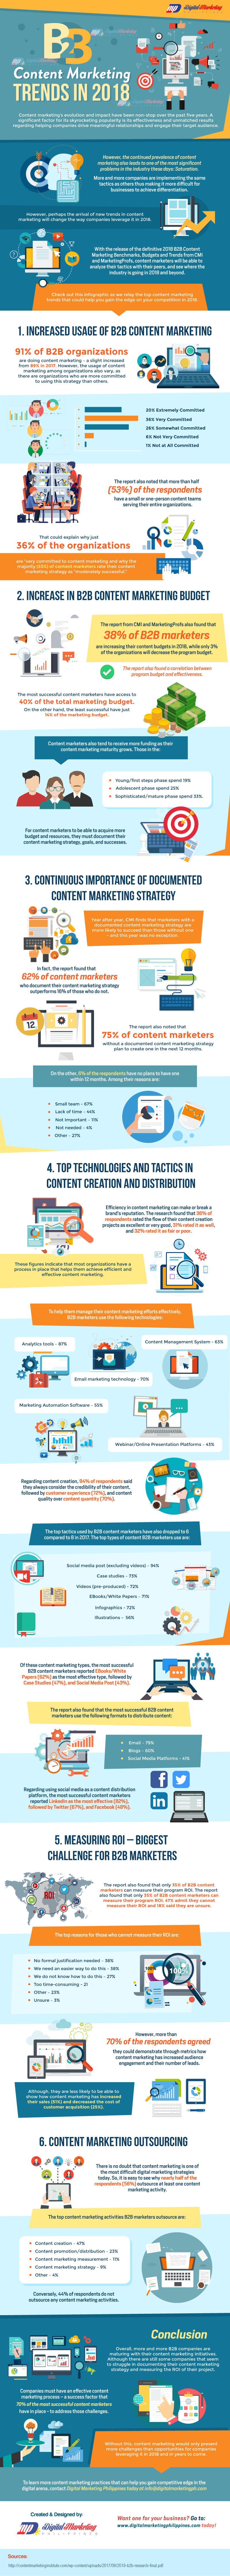 B2B Content Marketing Trends in 2018 (Infographic) - An Infographic from Digital Marketing Philippines